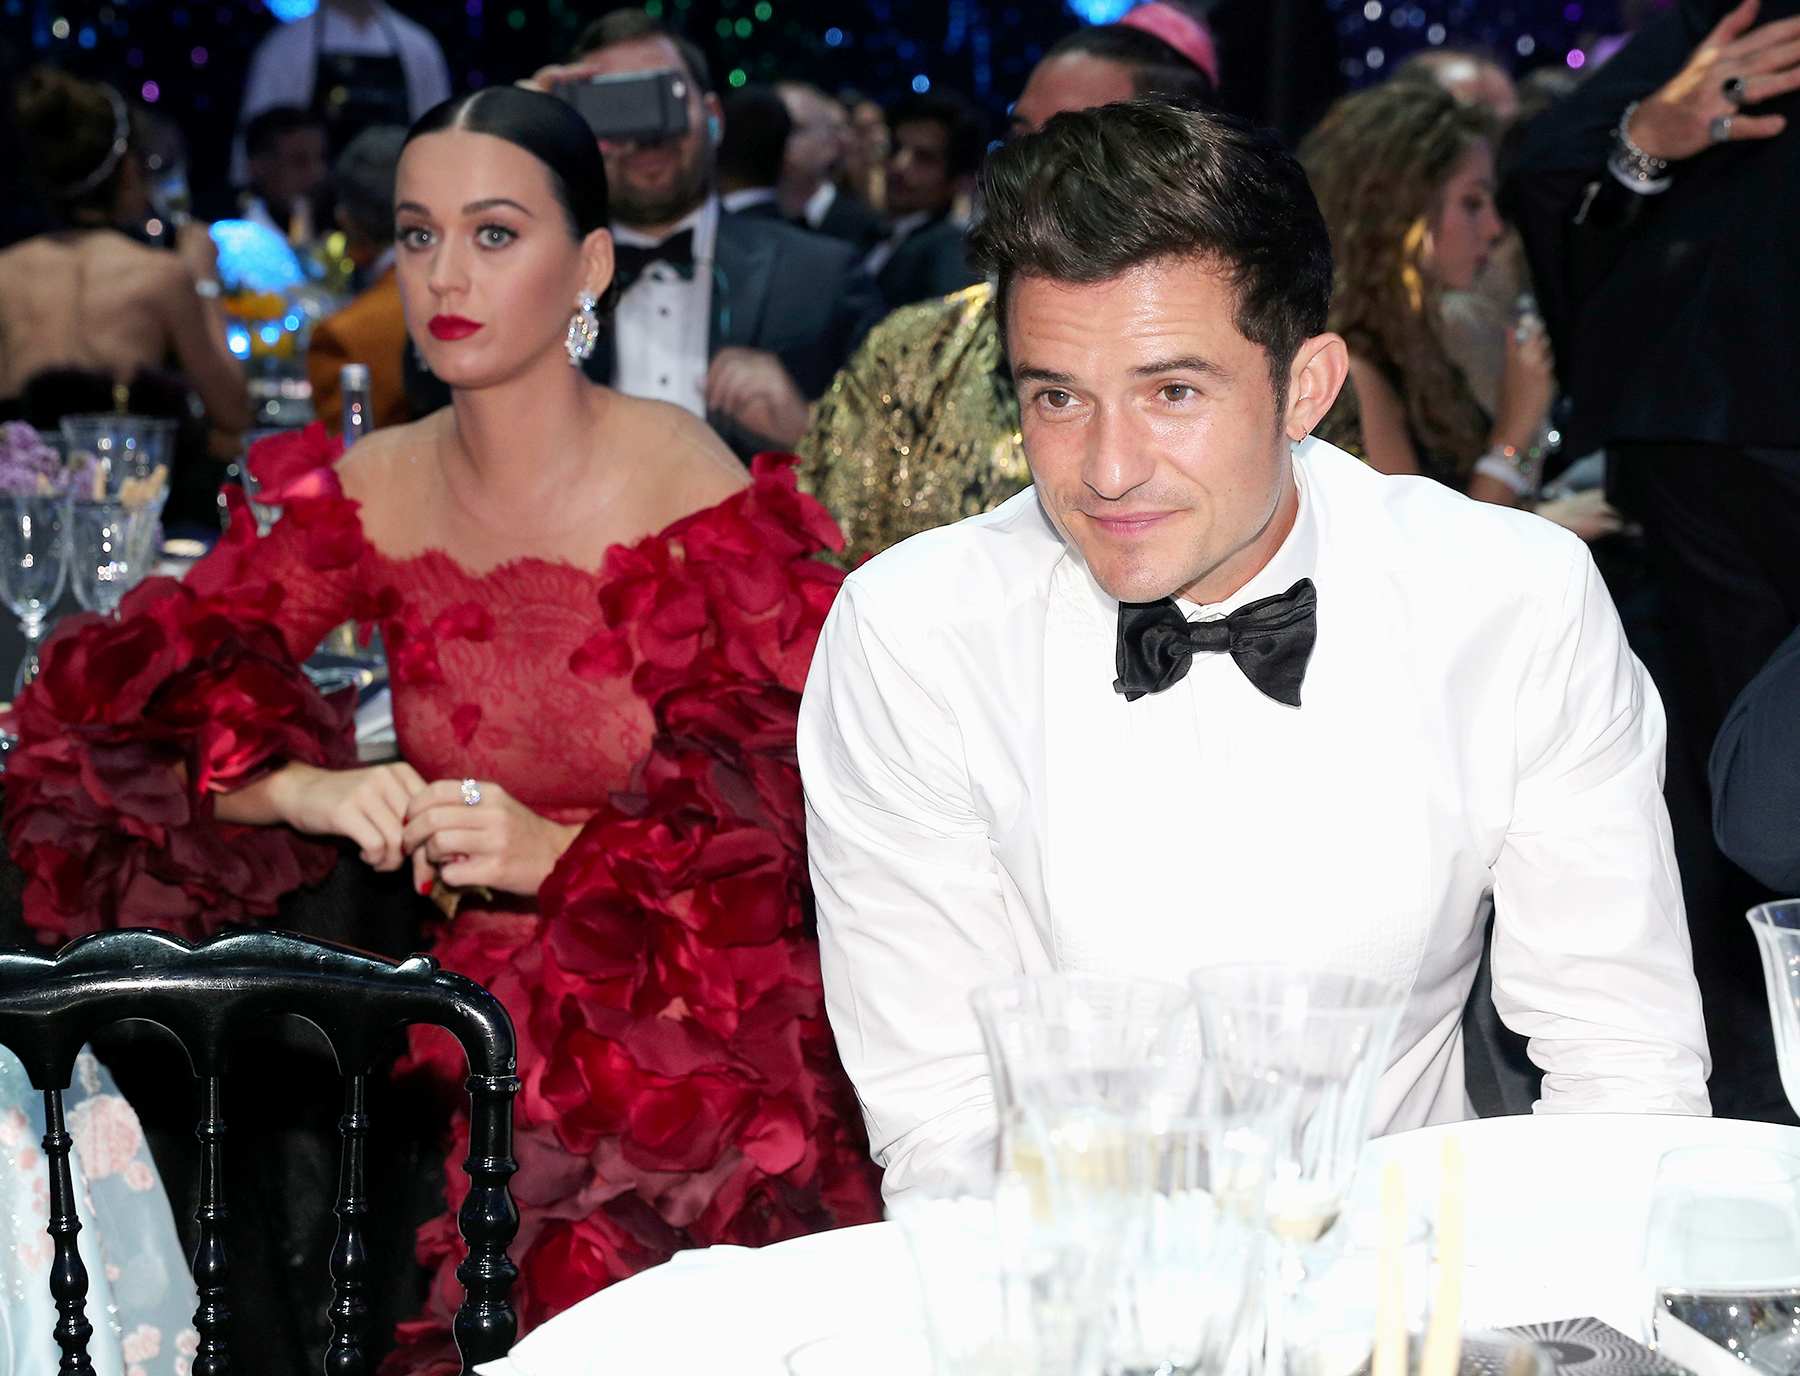 amfar katy perry orlando bloom - After Us confirmed that the pair were hooking up, they tried to avoid being spotted together inside the amfAR Gala during the Cannes Film Festival in France. They even went so far as to sit at different — but adjacent — tables.